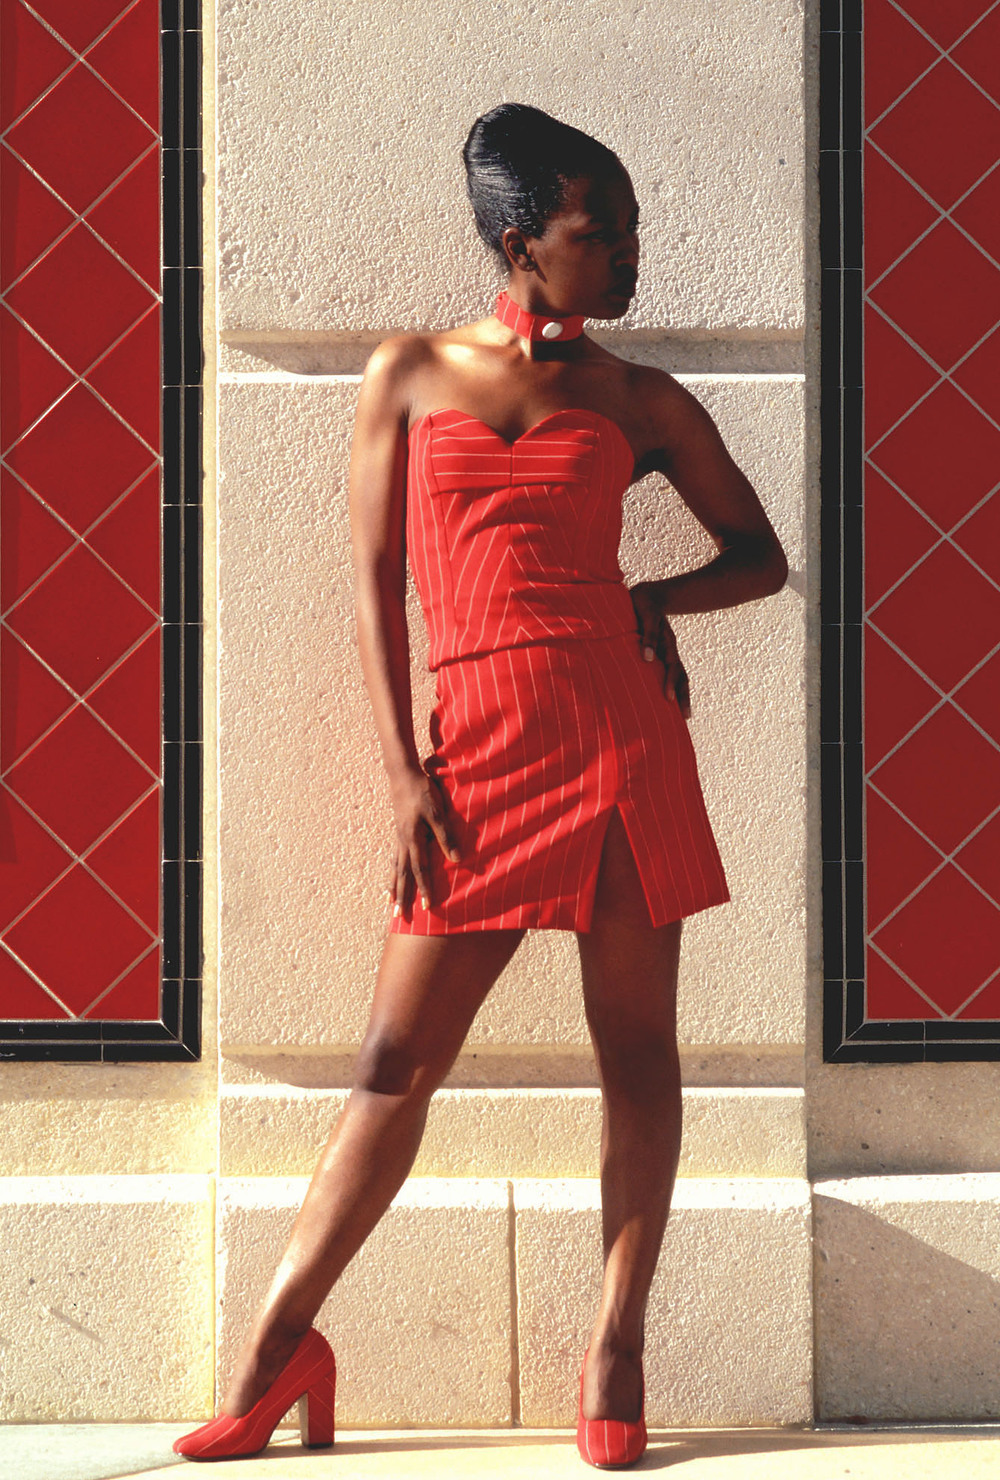 nadine h red dress a.jpg